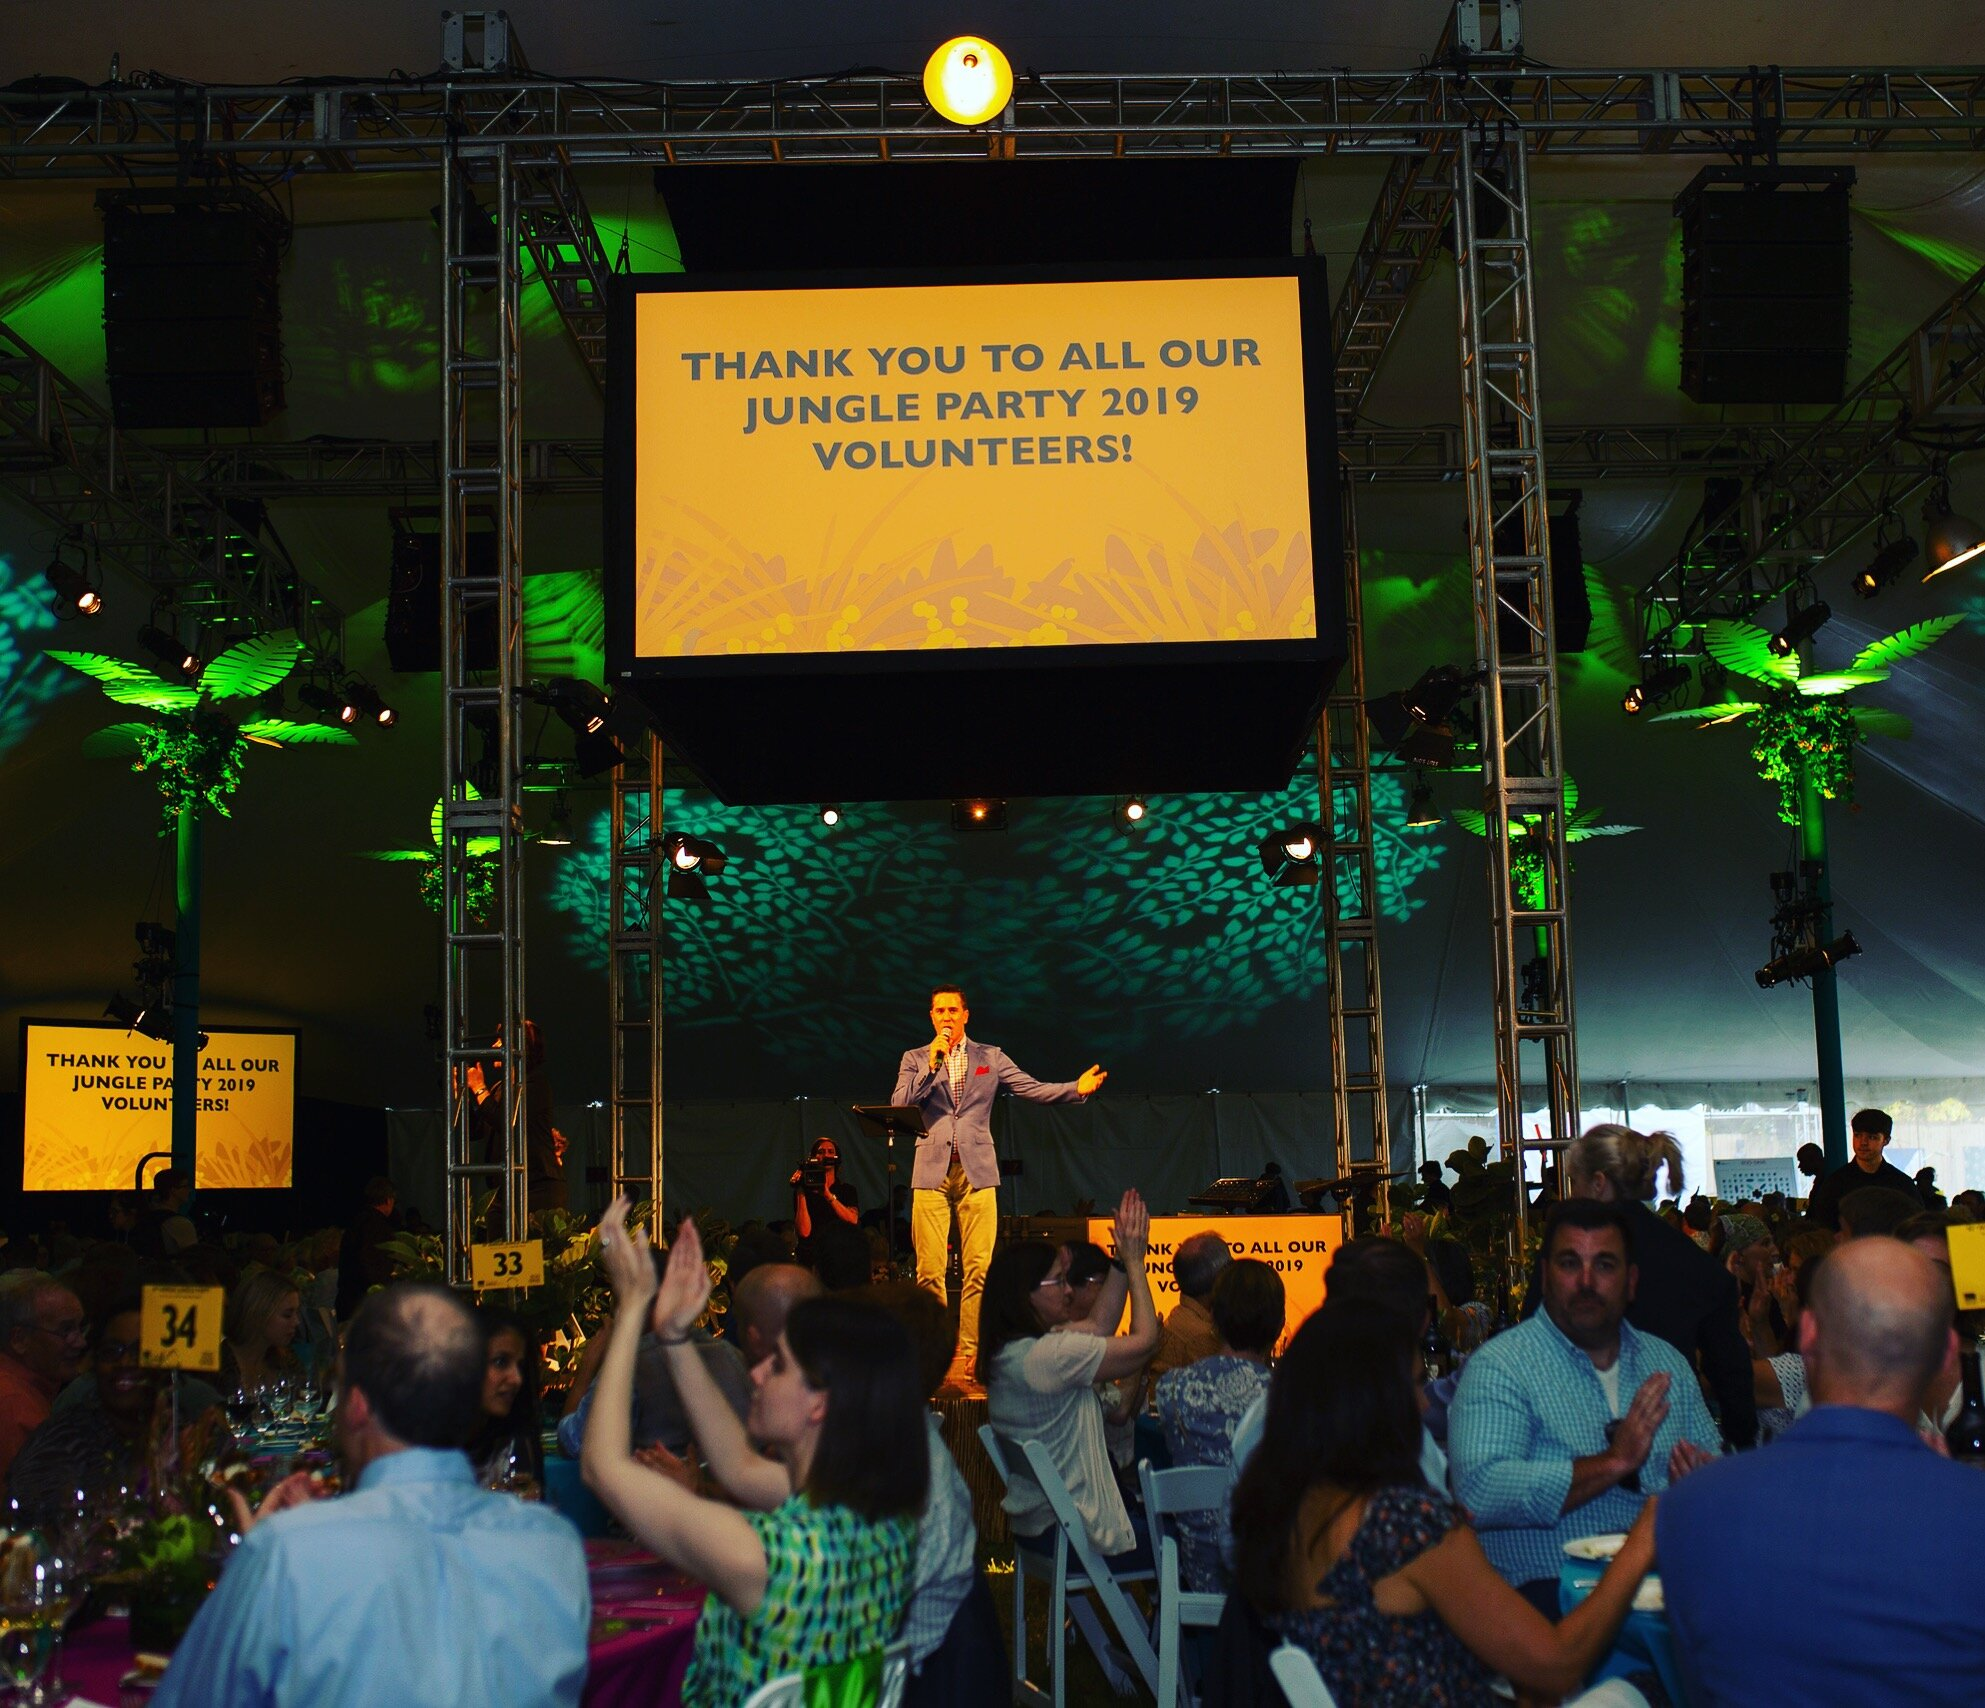 Matt hosts 2018, 2019 Jungle Party at Woodland Park Zoo in Seattle helping raise more than $4 million over the two years.